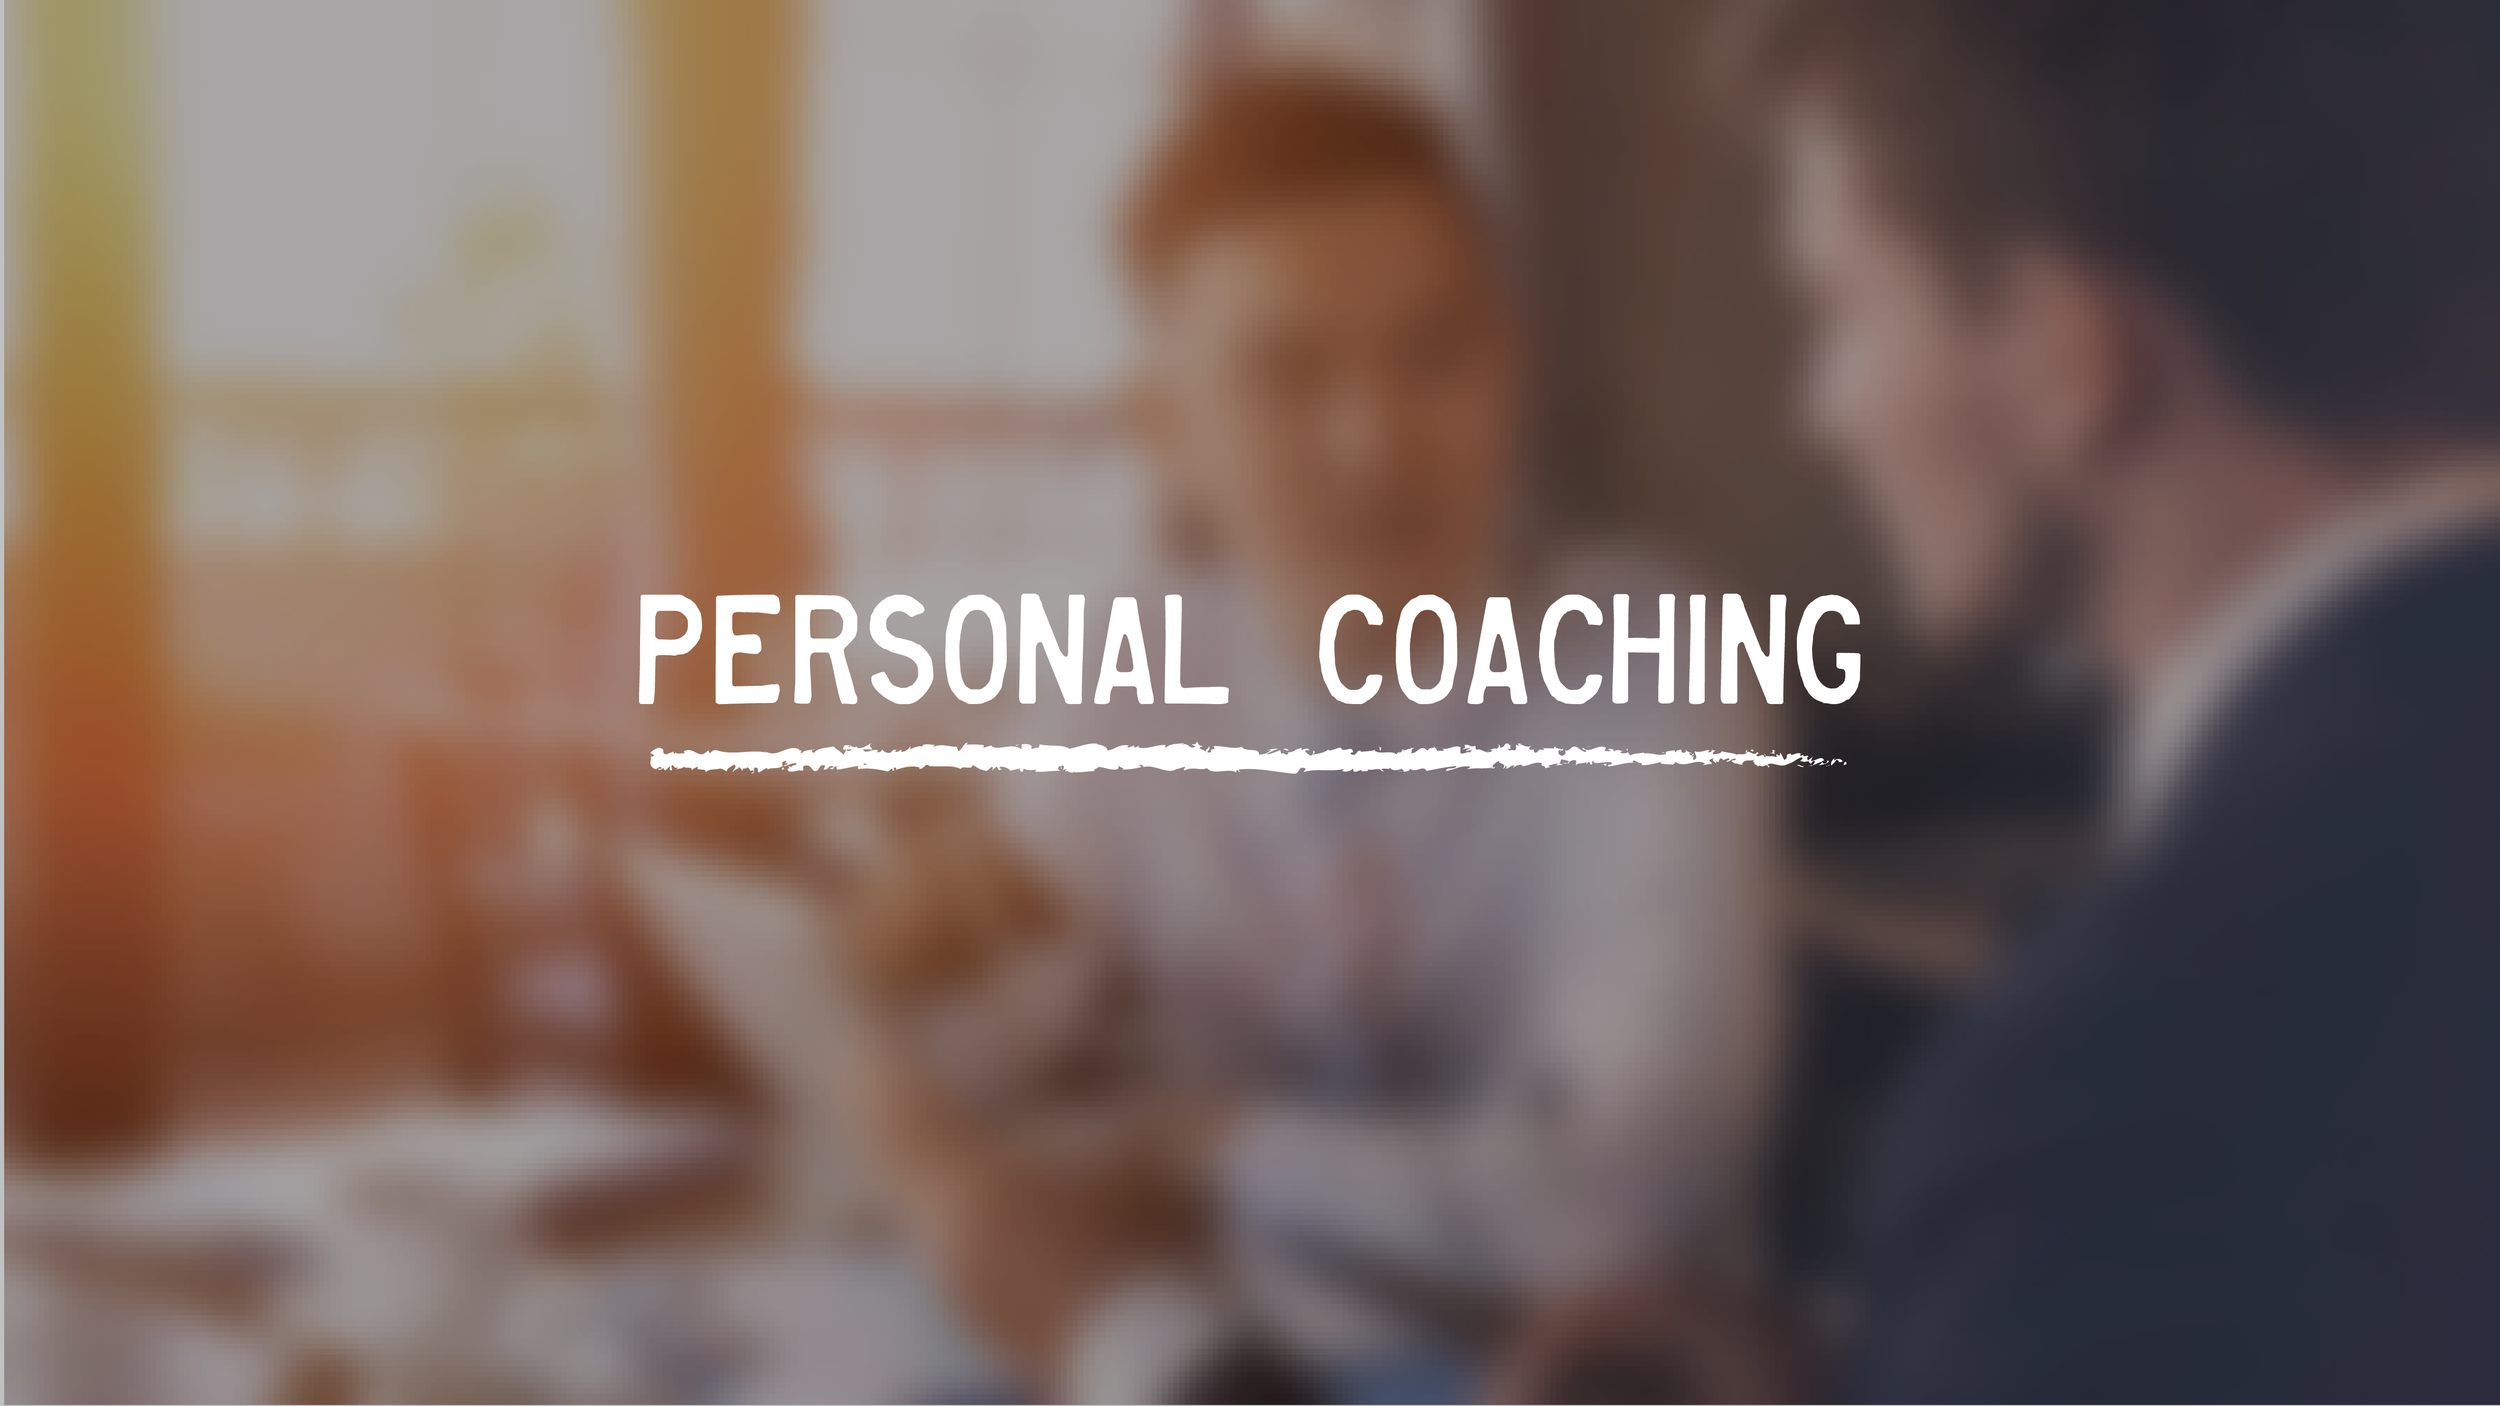 Personal Coaching Pic-01.png